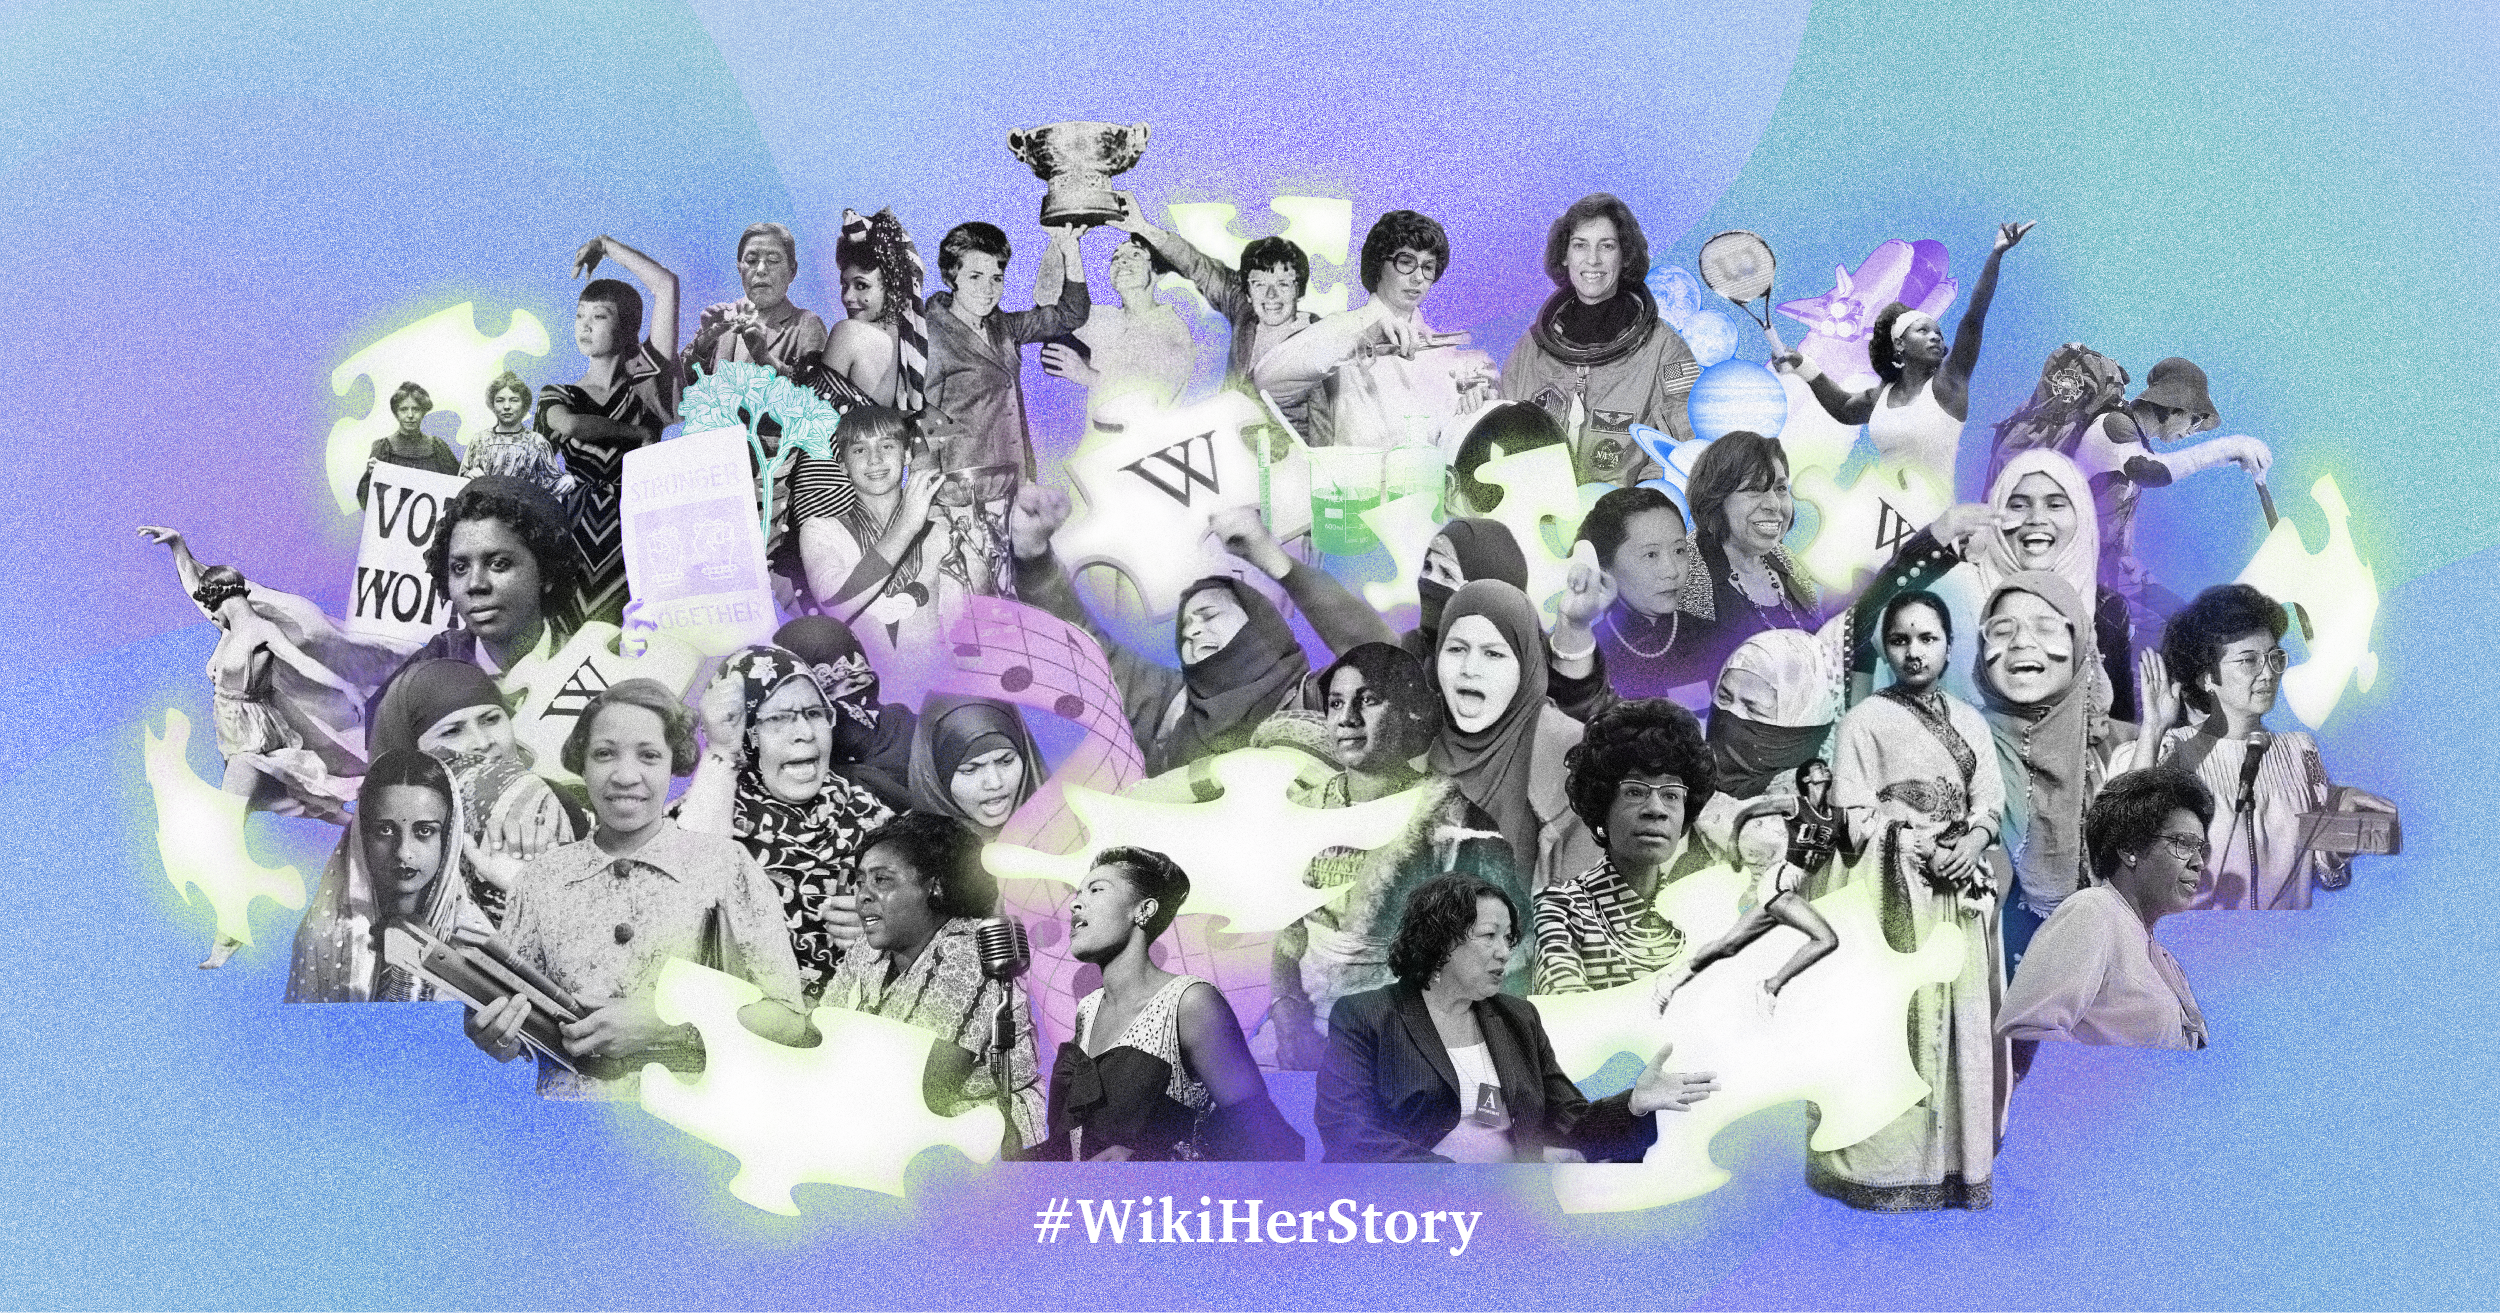 Collage of images related to women and Wikipedia for Women's History Month